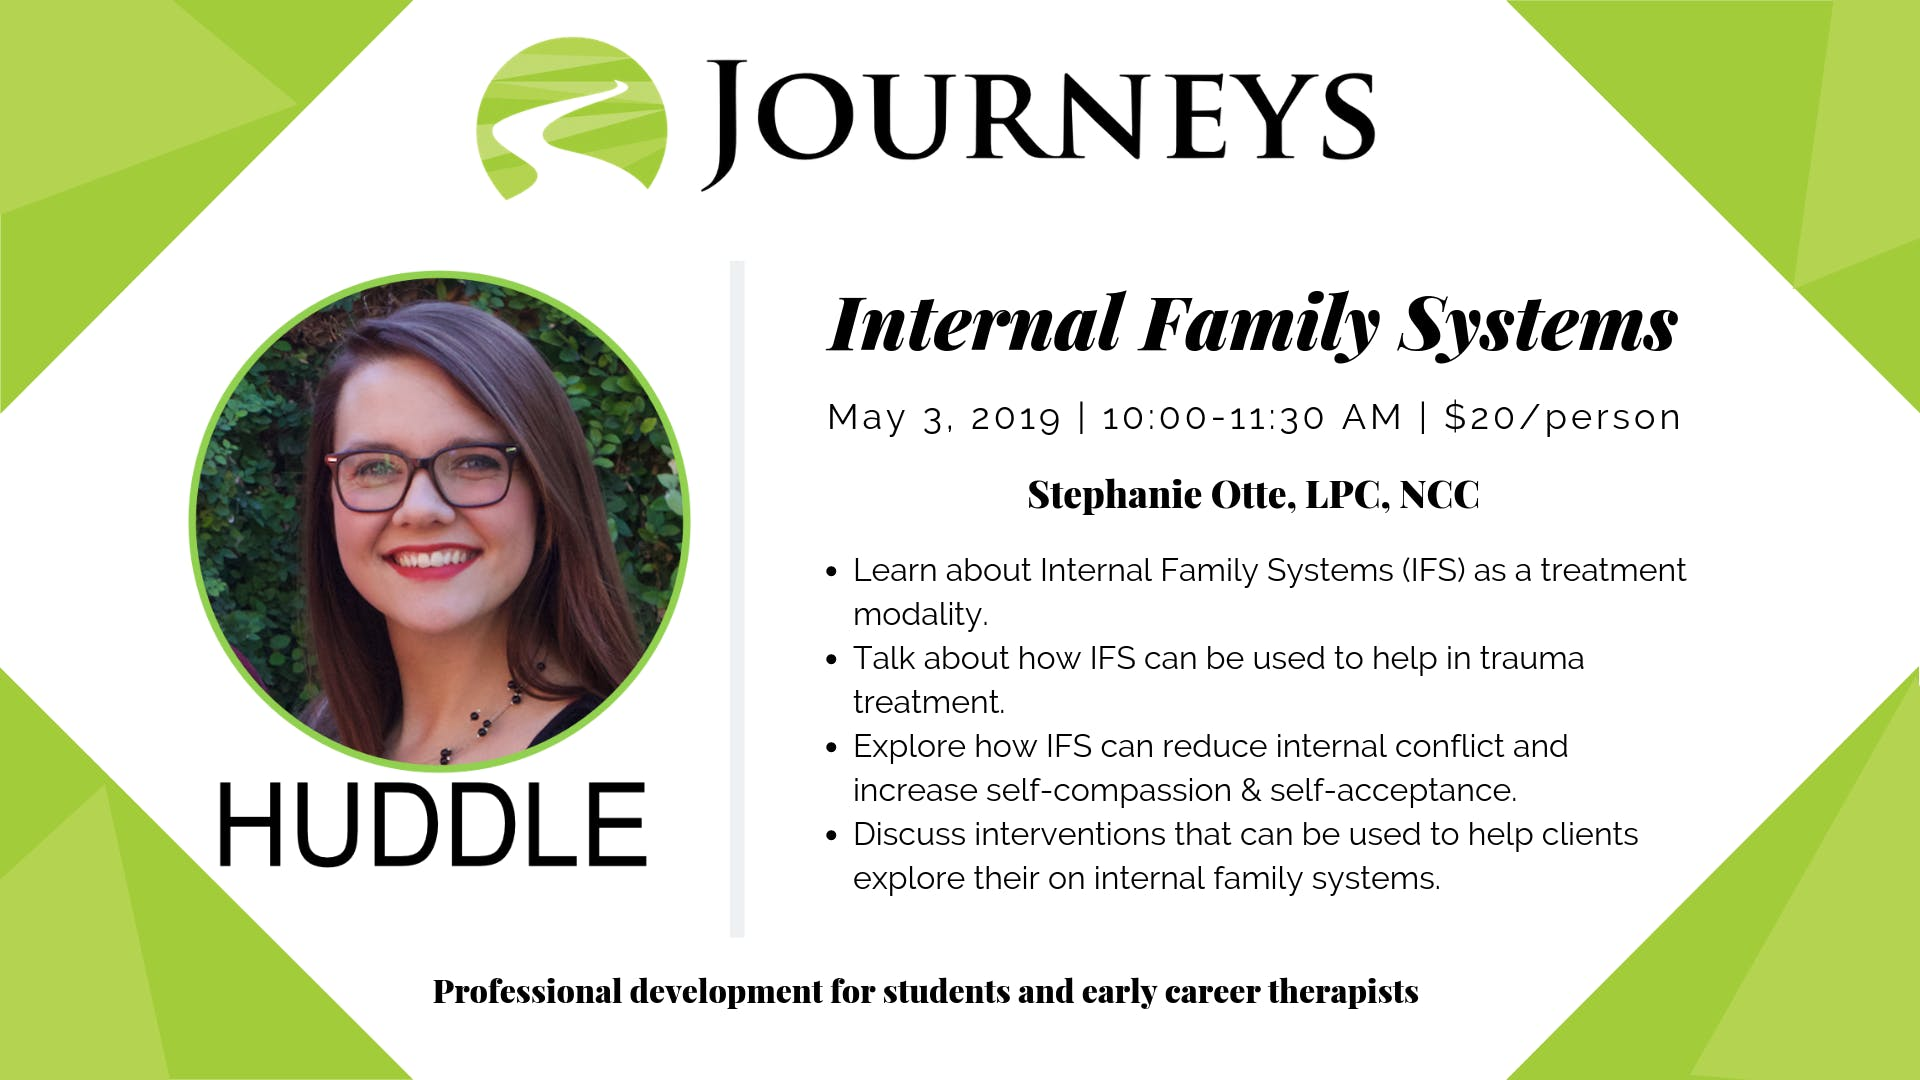 HUDDLE - Internal Family Systems (IFS)